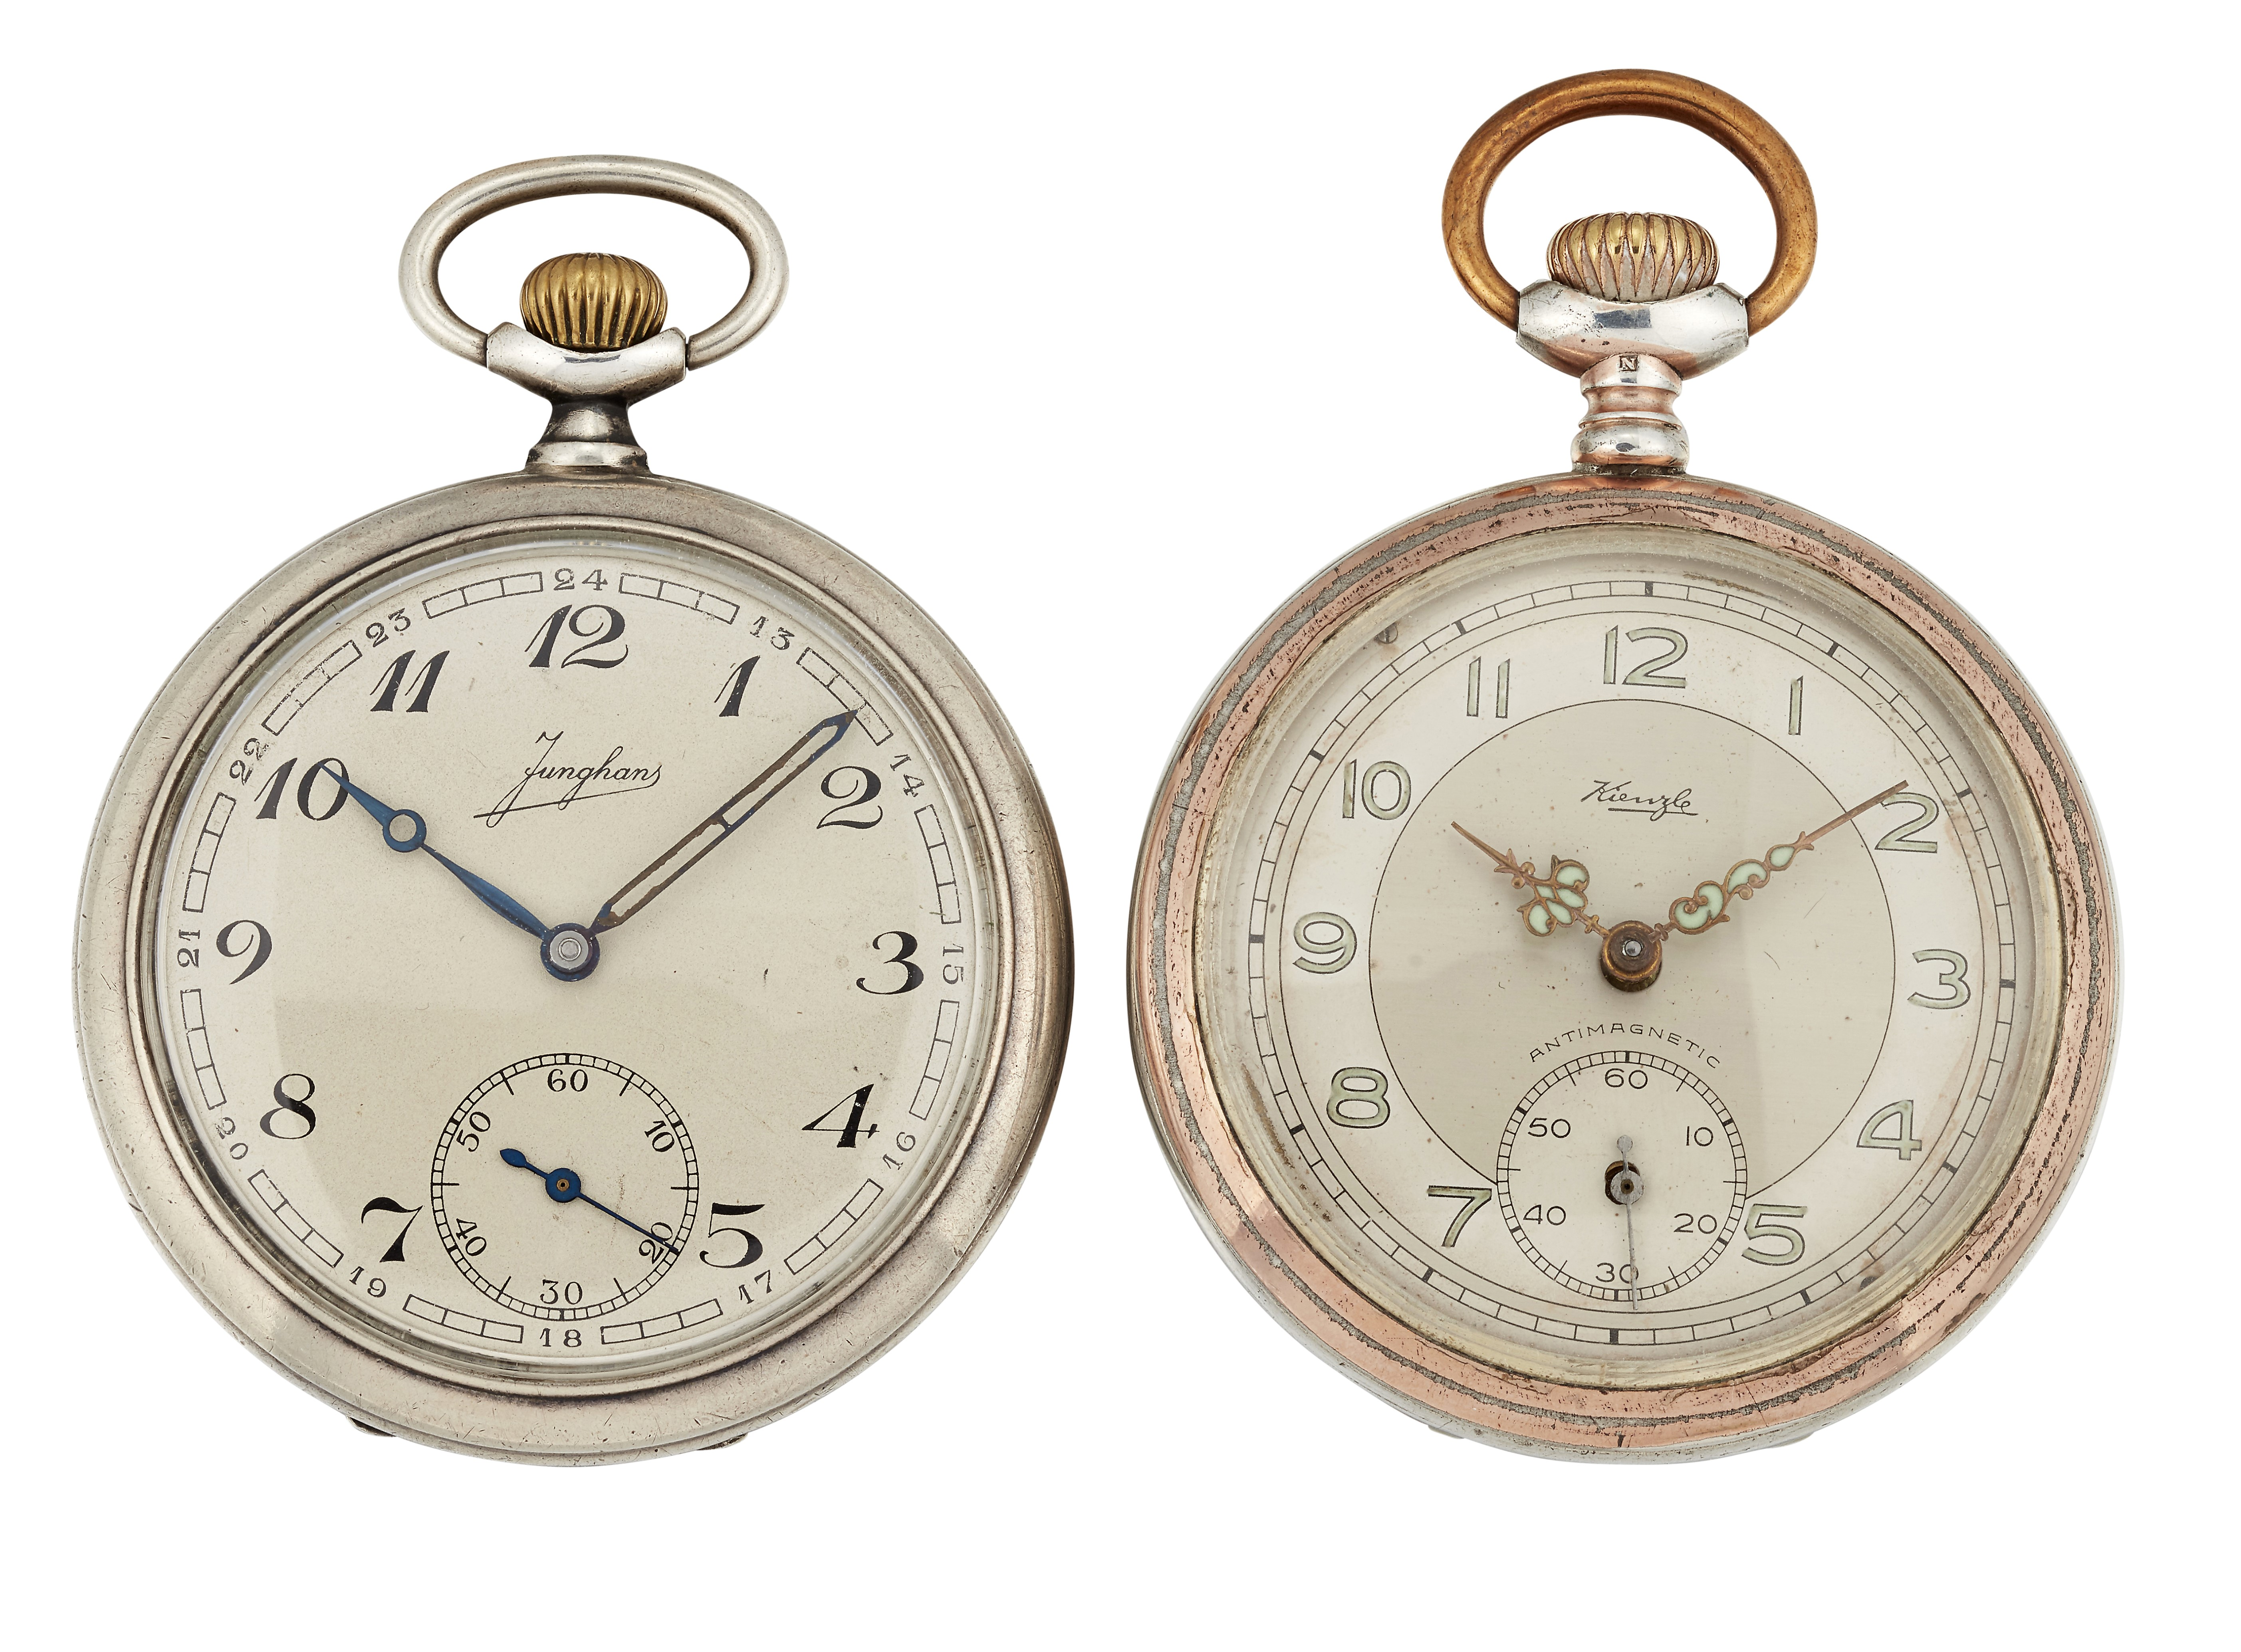 Lot 345 - A JUNGHANS AND A KIENZLE POCKET WATCH